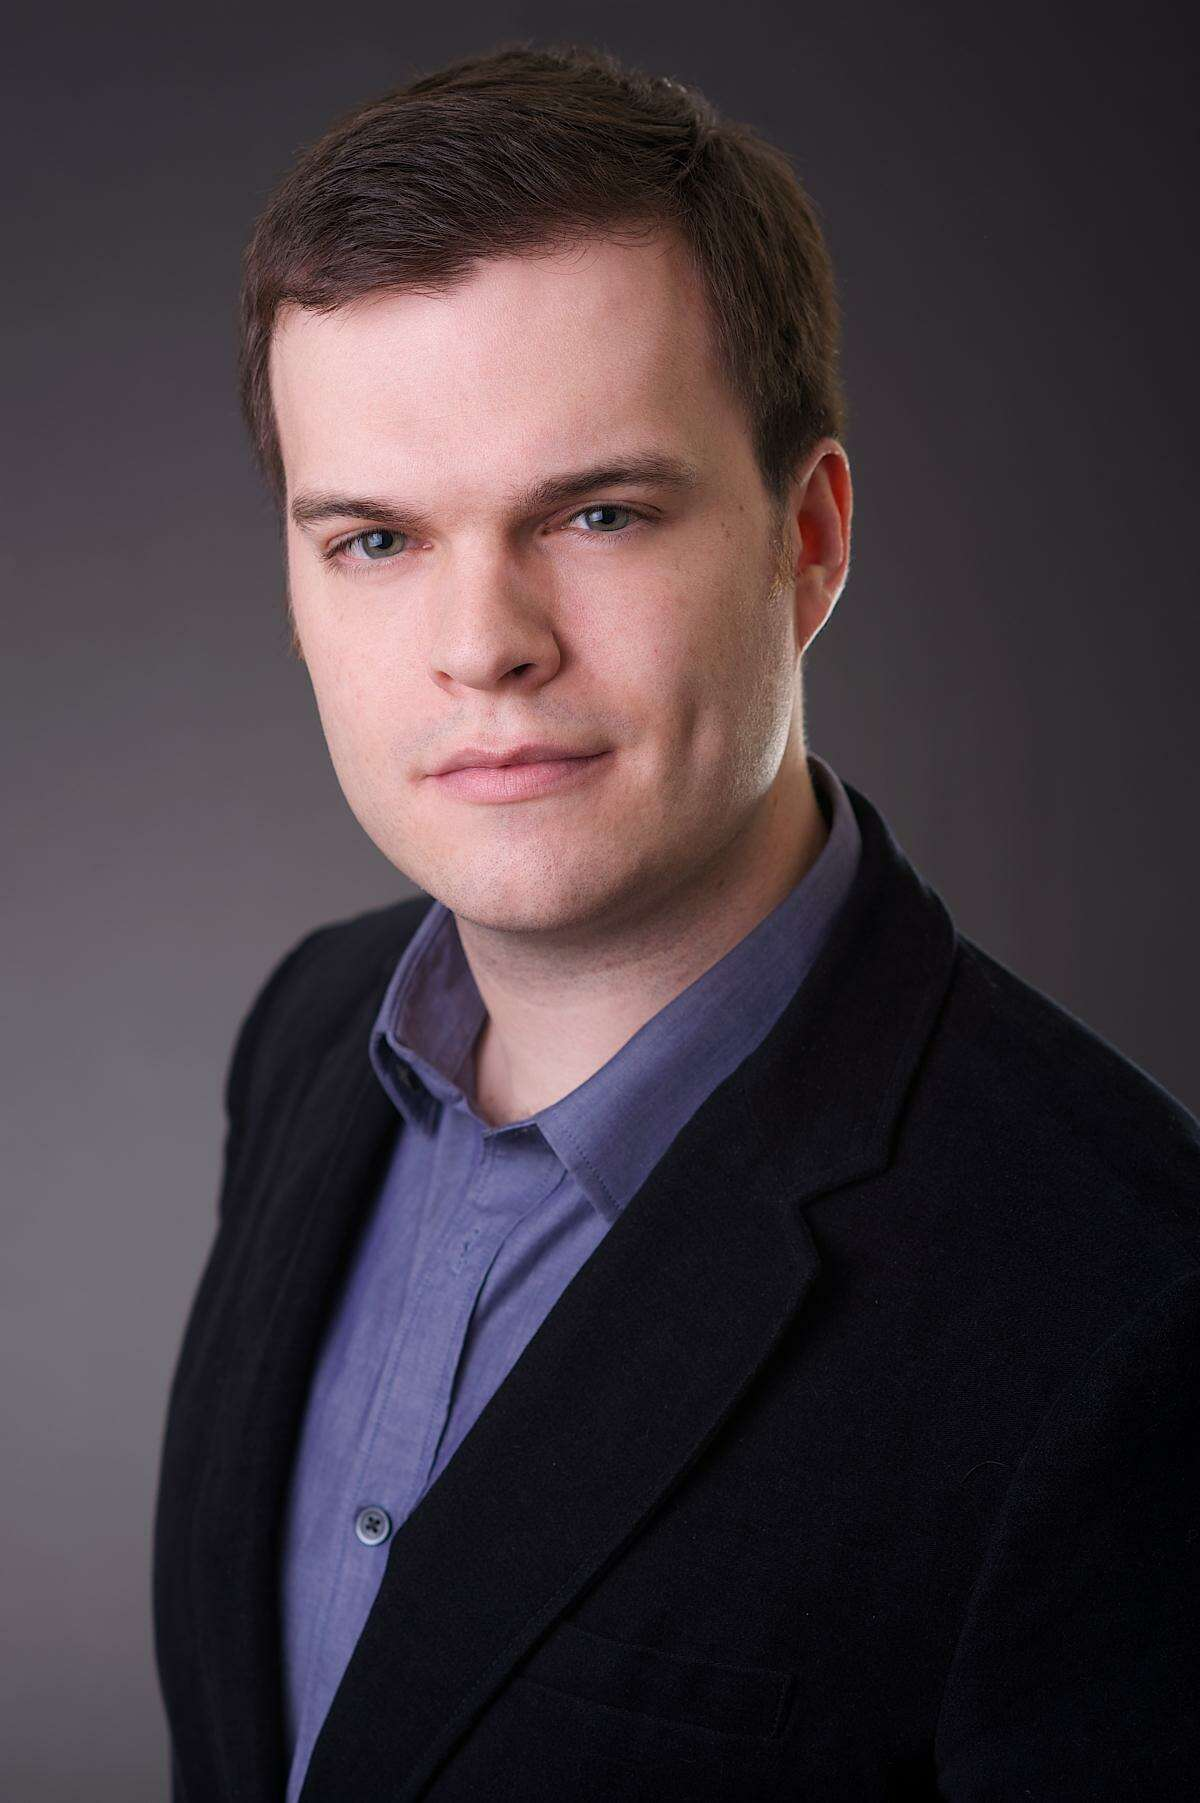 Tenor David Blalock will be a featured performer Saturday, Dec. 17, with the Greater Bridgeport Symphony in Bridgeport.